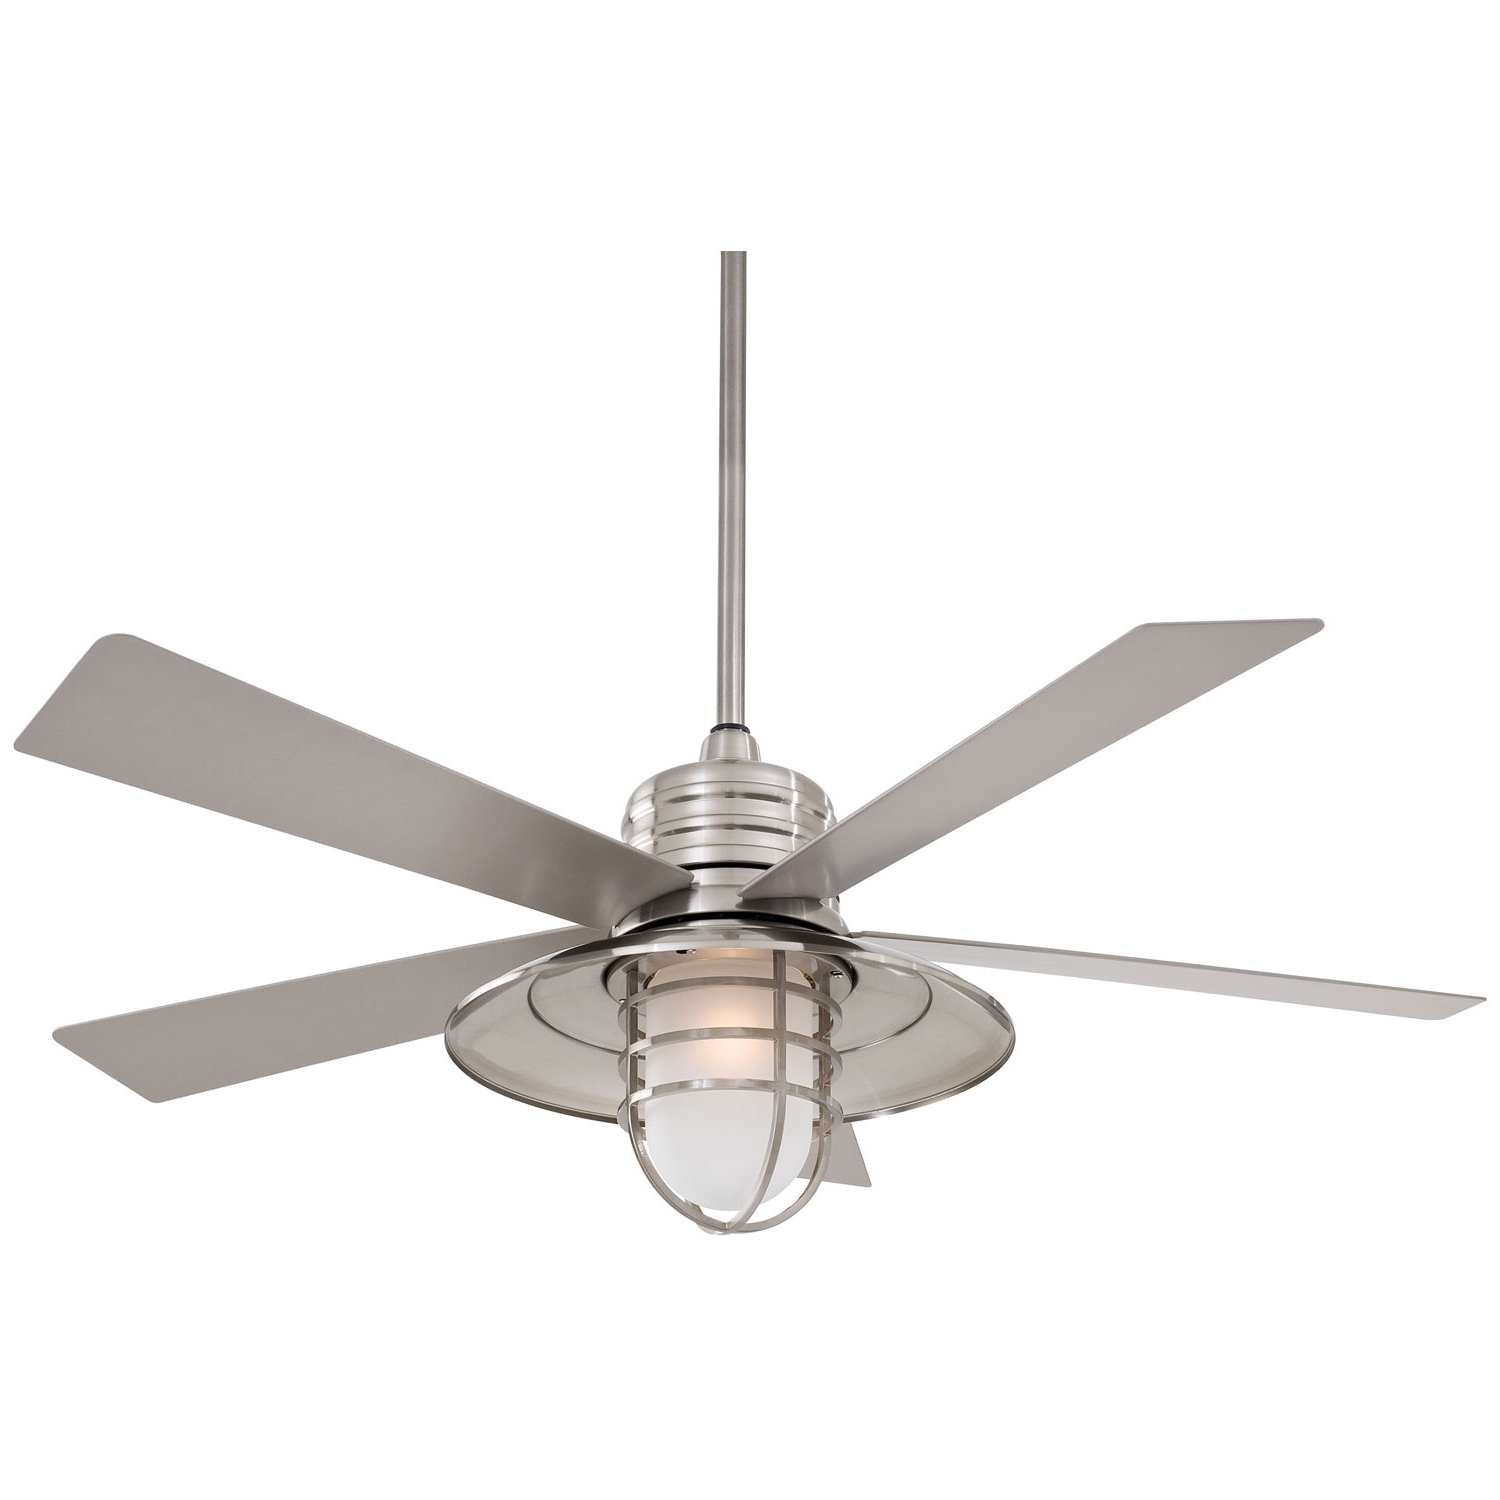 Newest Outdoor Ceiling Fans With Damp Rated Lights Inside Minka Aire Rainman Brushed Nickel 54 Inch Blade Indoor/outdoor (Gallery 1 of 20)